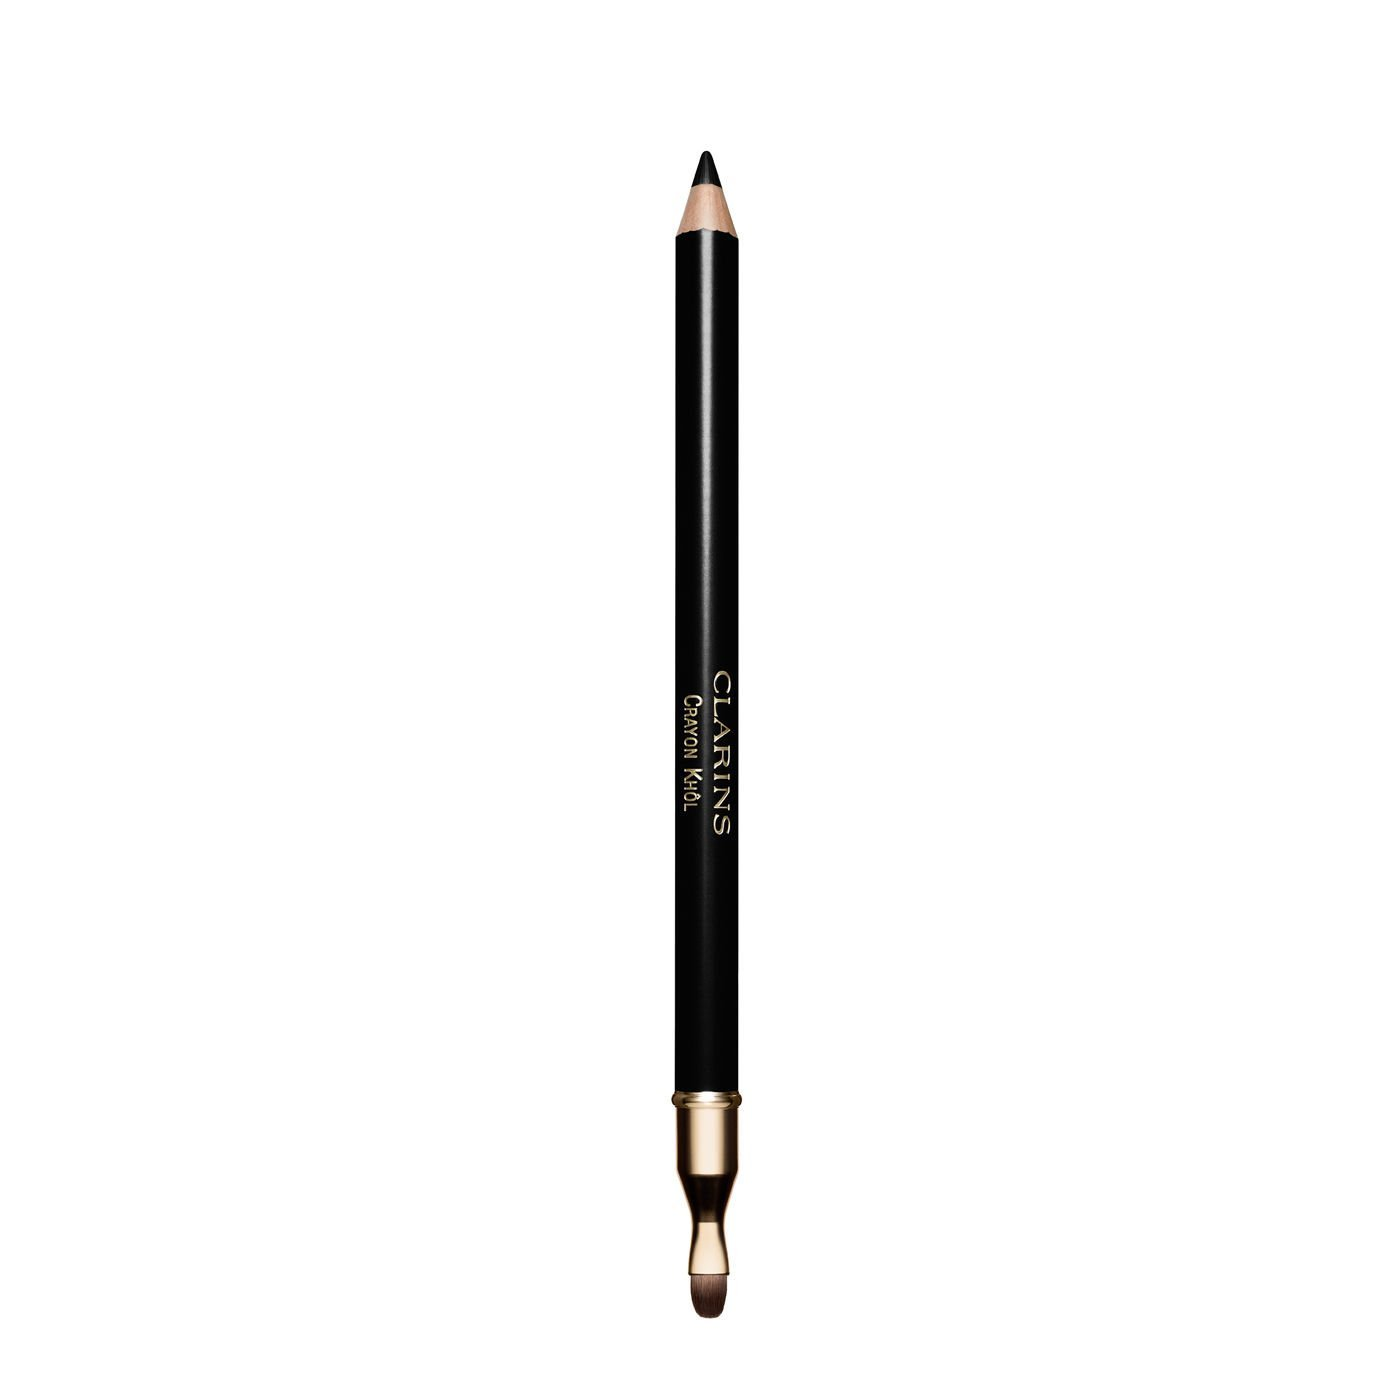 Clarins Crayon Khol Eye Pencil Accentuates eyes with true precision. color: 01 intense black, size: 1,05 g,